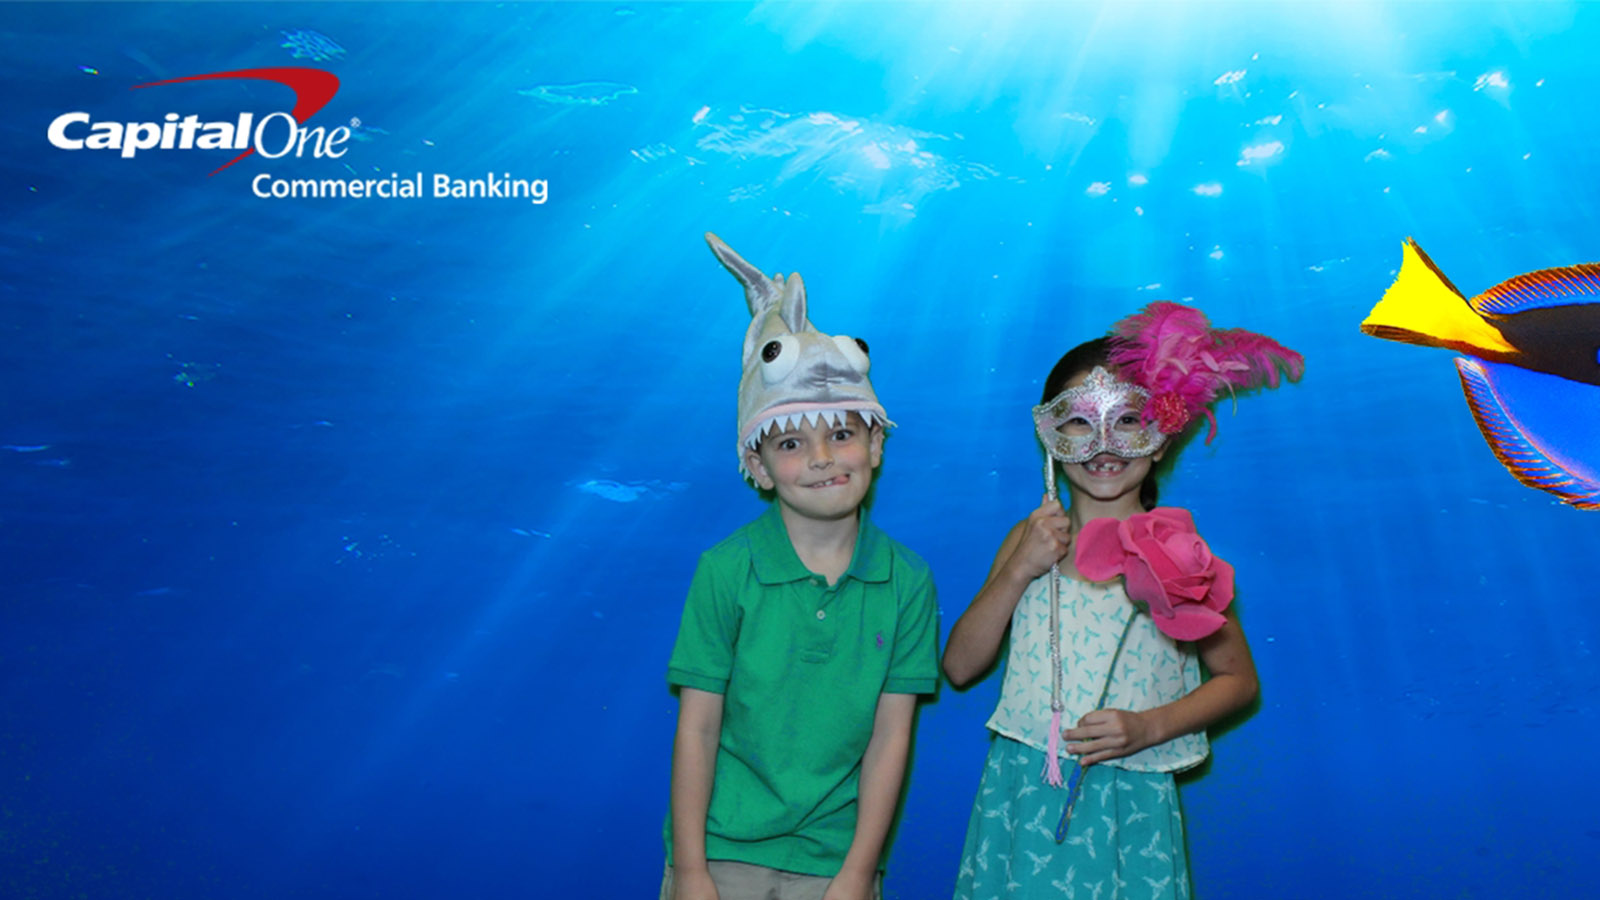 Green Screen Photo Booth for Corporate Event